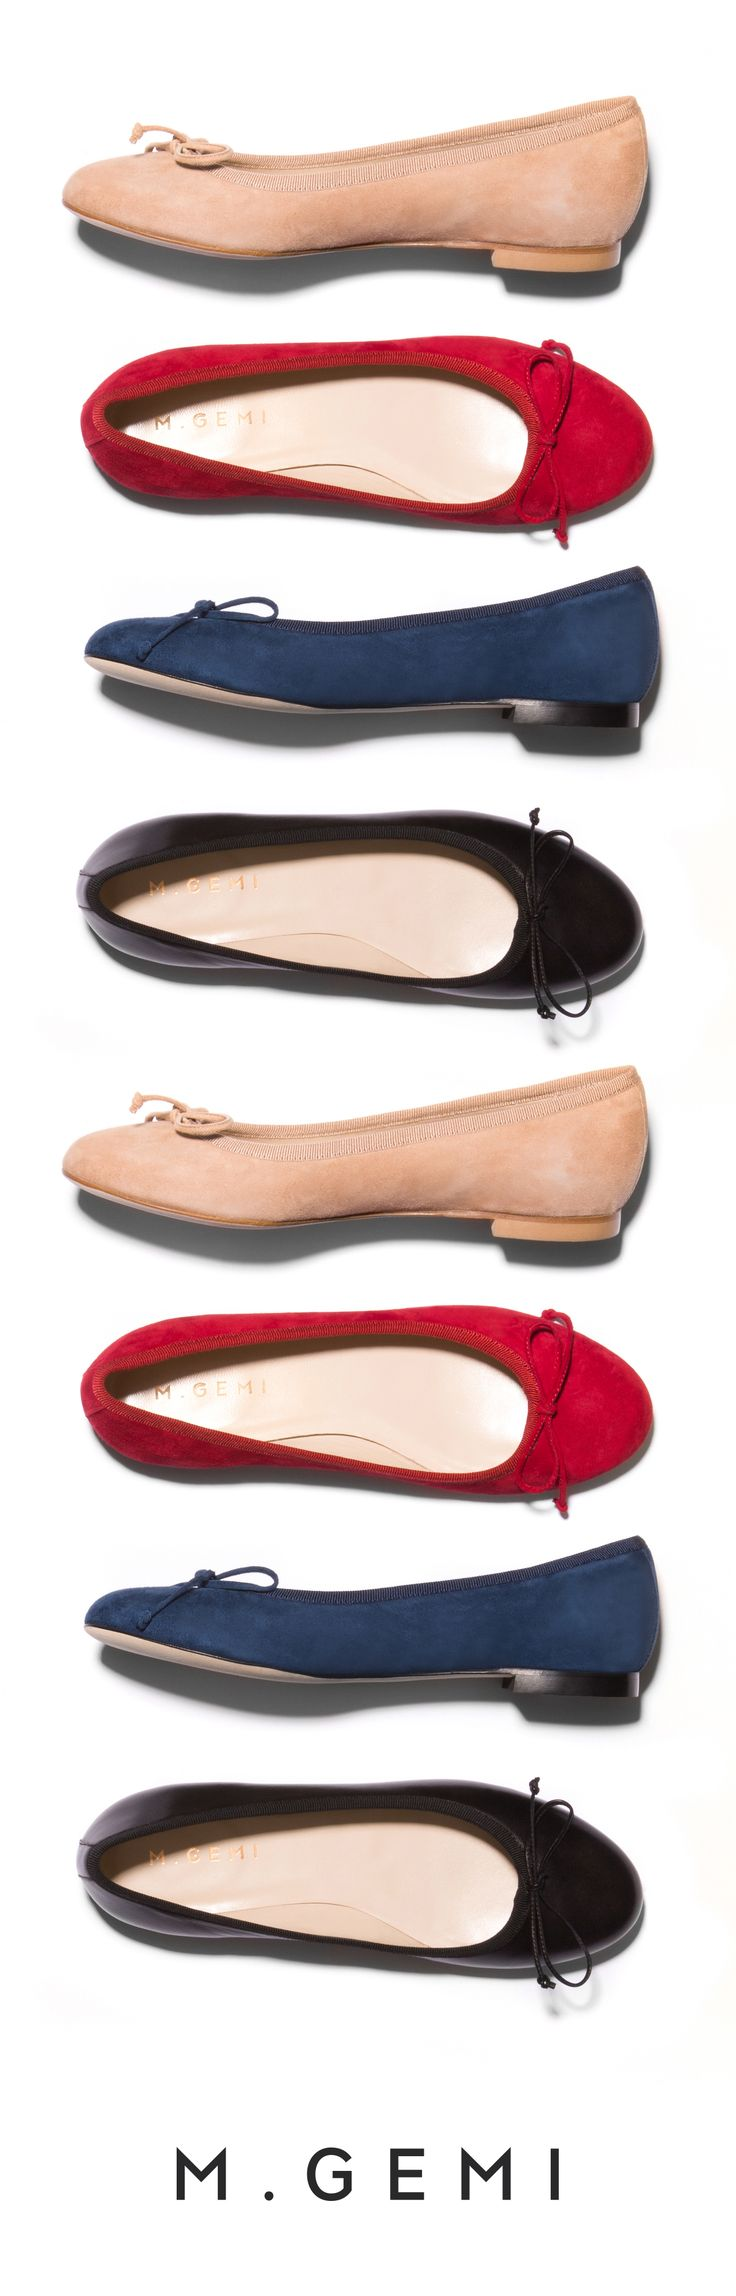 No shoe arsenal is complete without a perfectly balanced ballet flat. Say  ciao to The